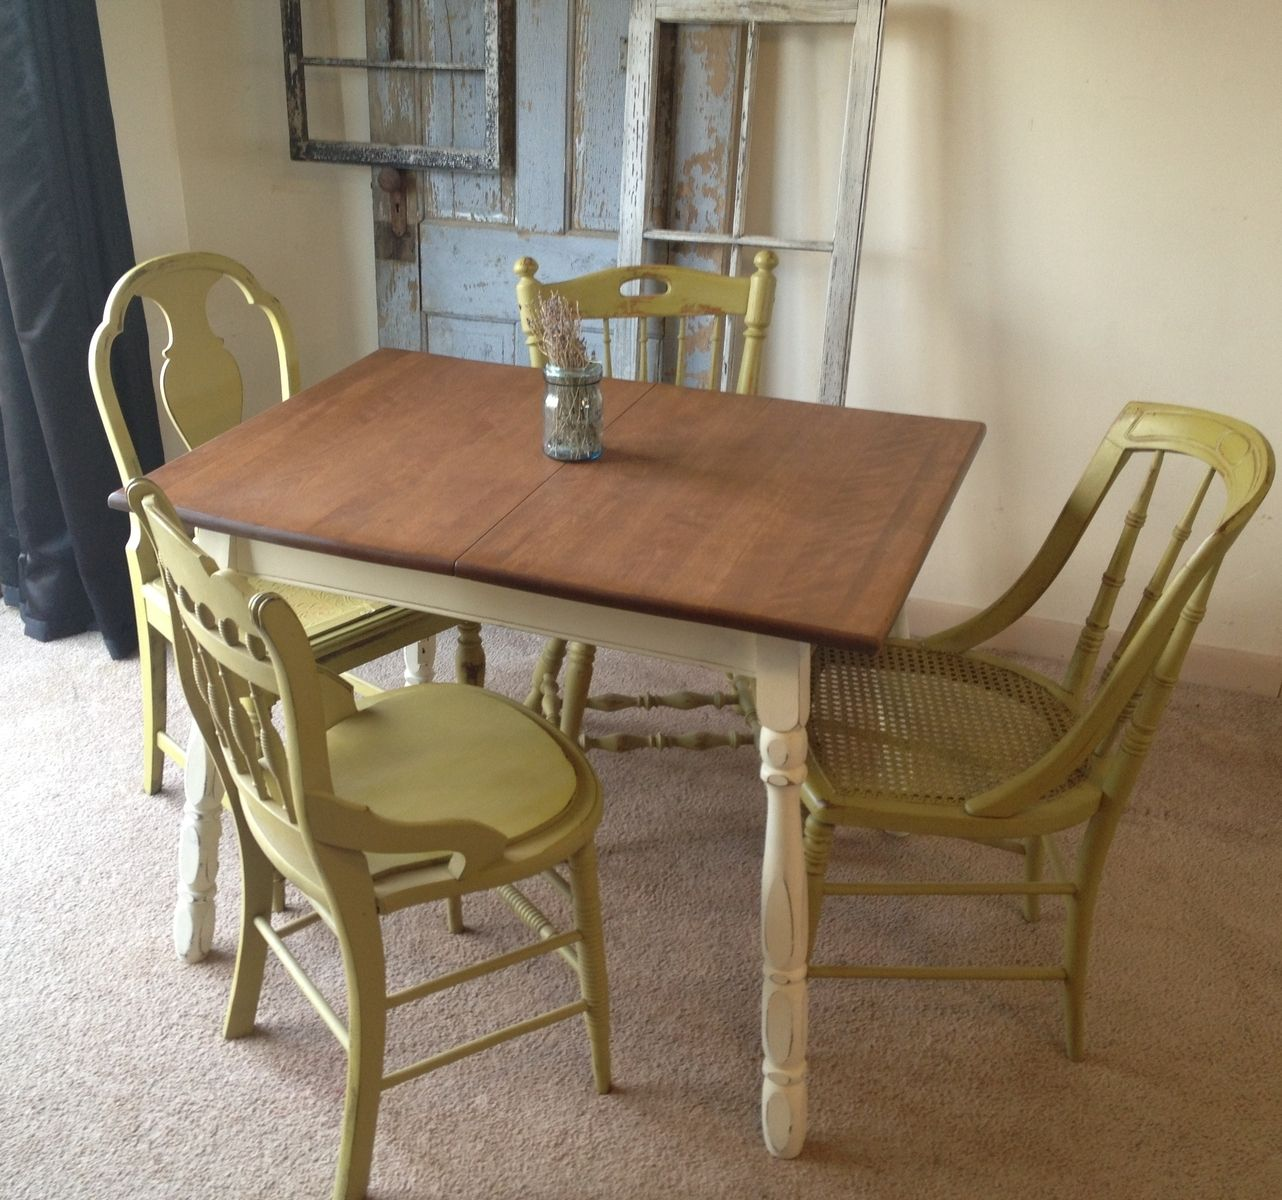 Etonnant Vintage Small Kitchen Table: Like The Cream Painted Legs With The Natural  Wood Top